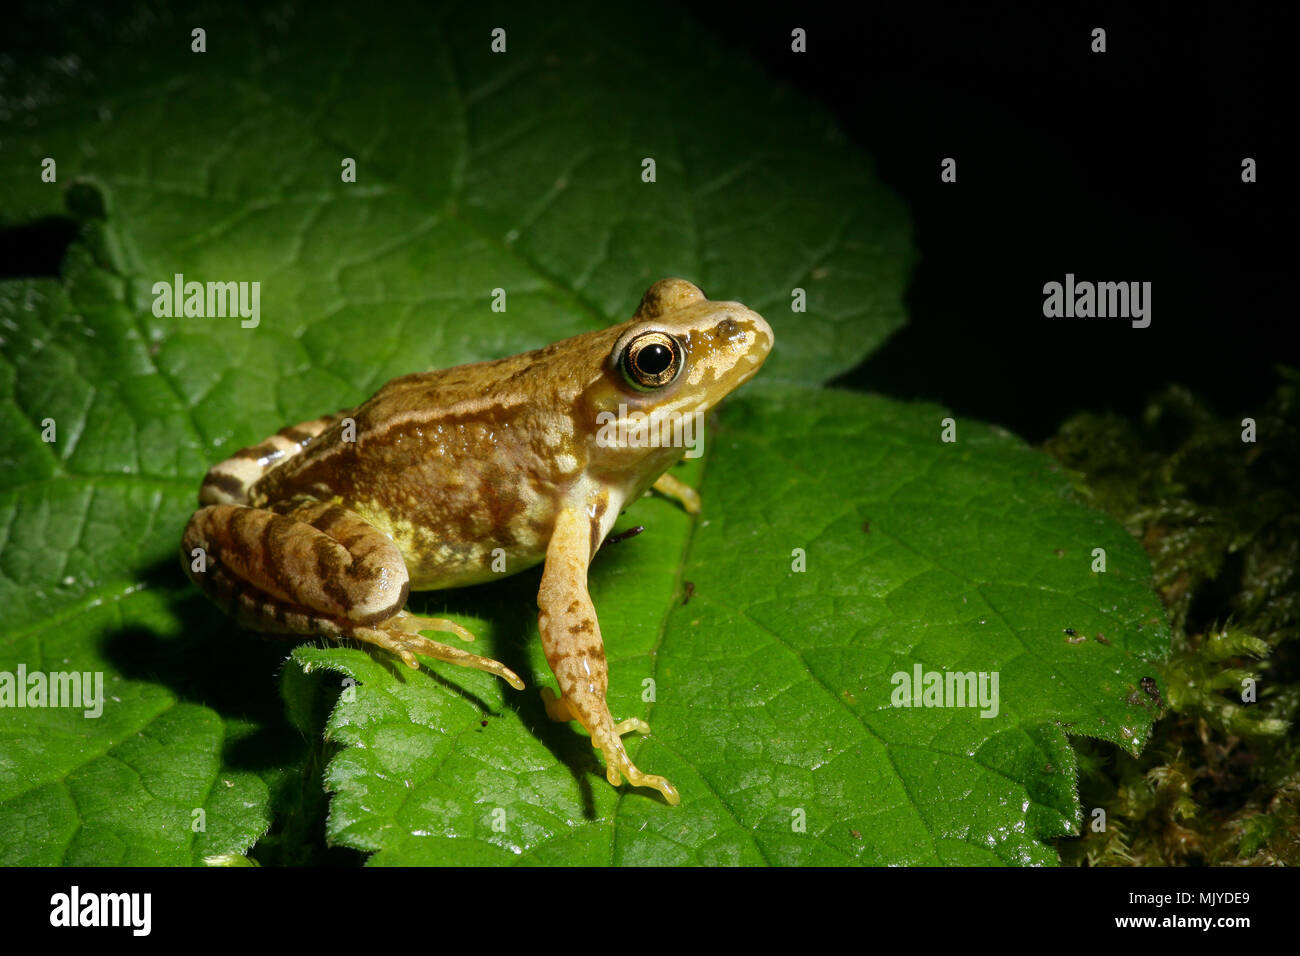 A common frog Rana temporaria photographed in Dorset England UK. - Stock Image